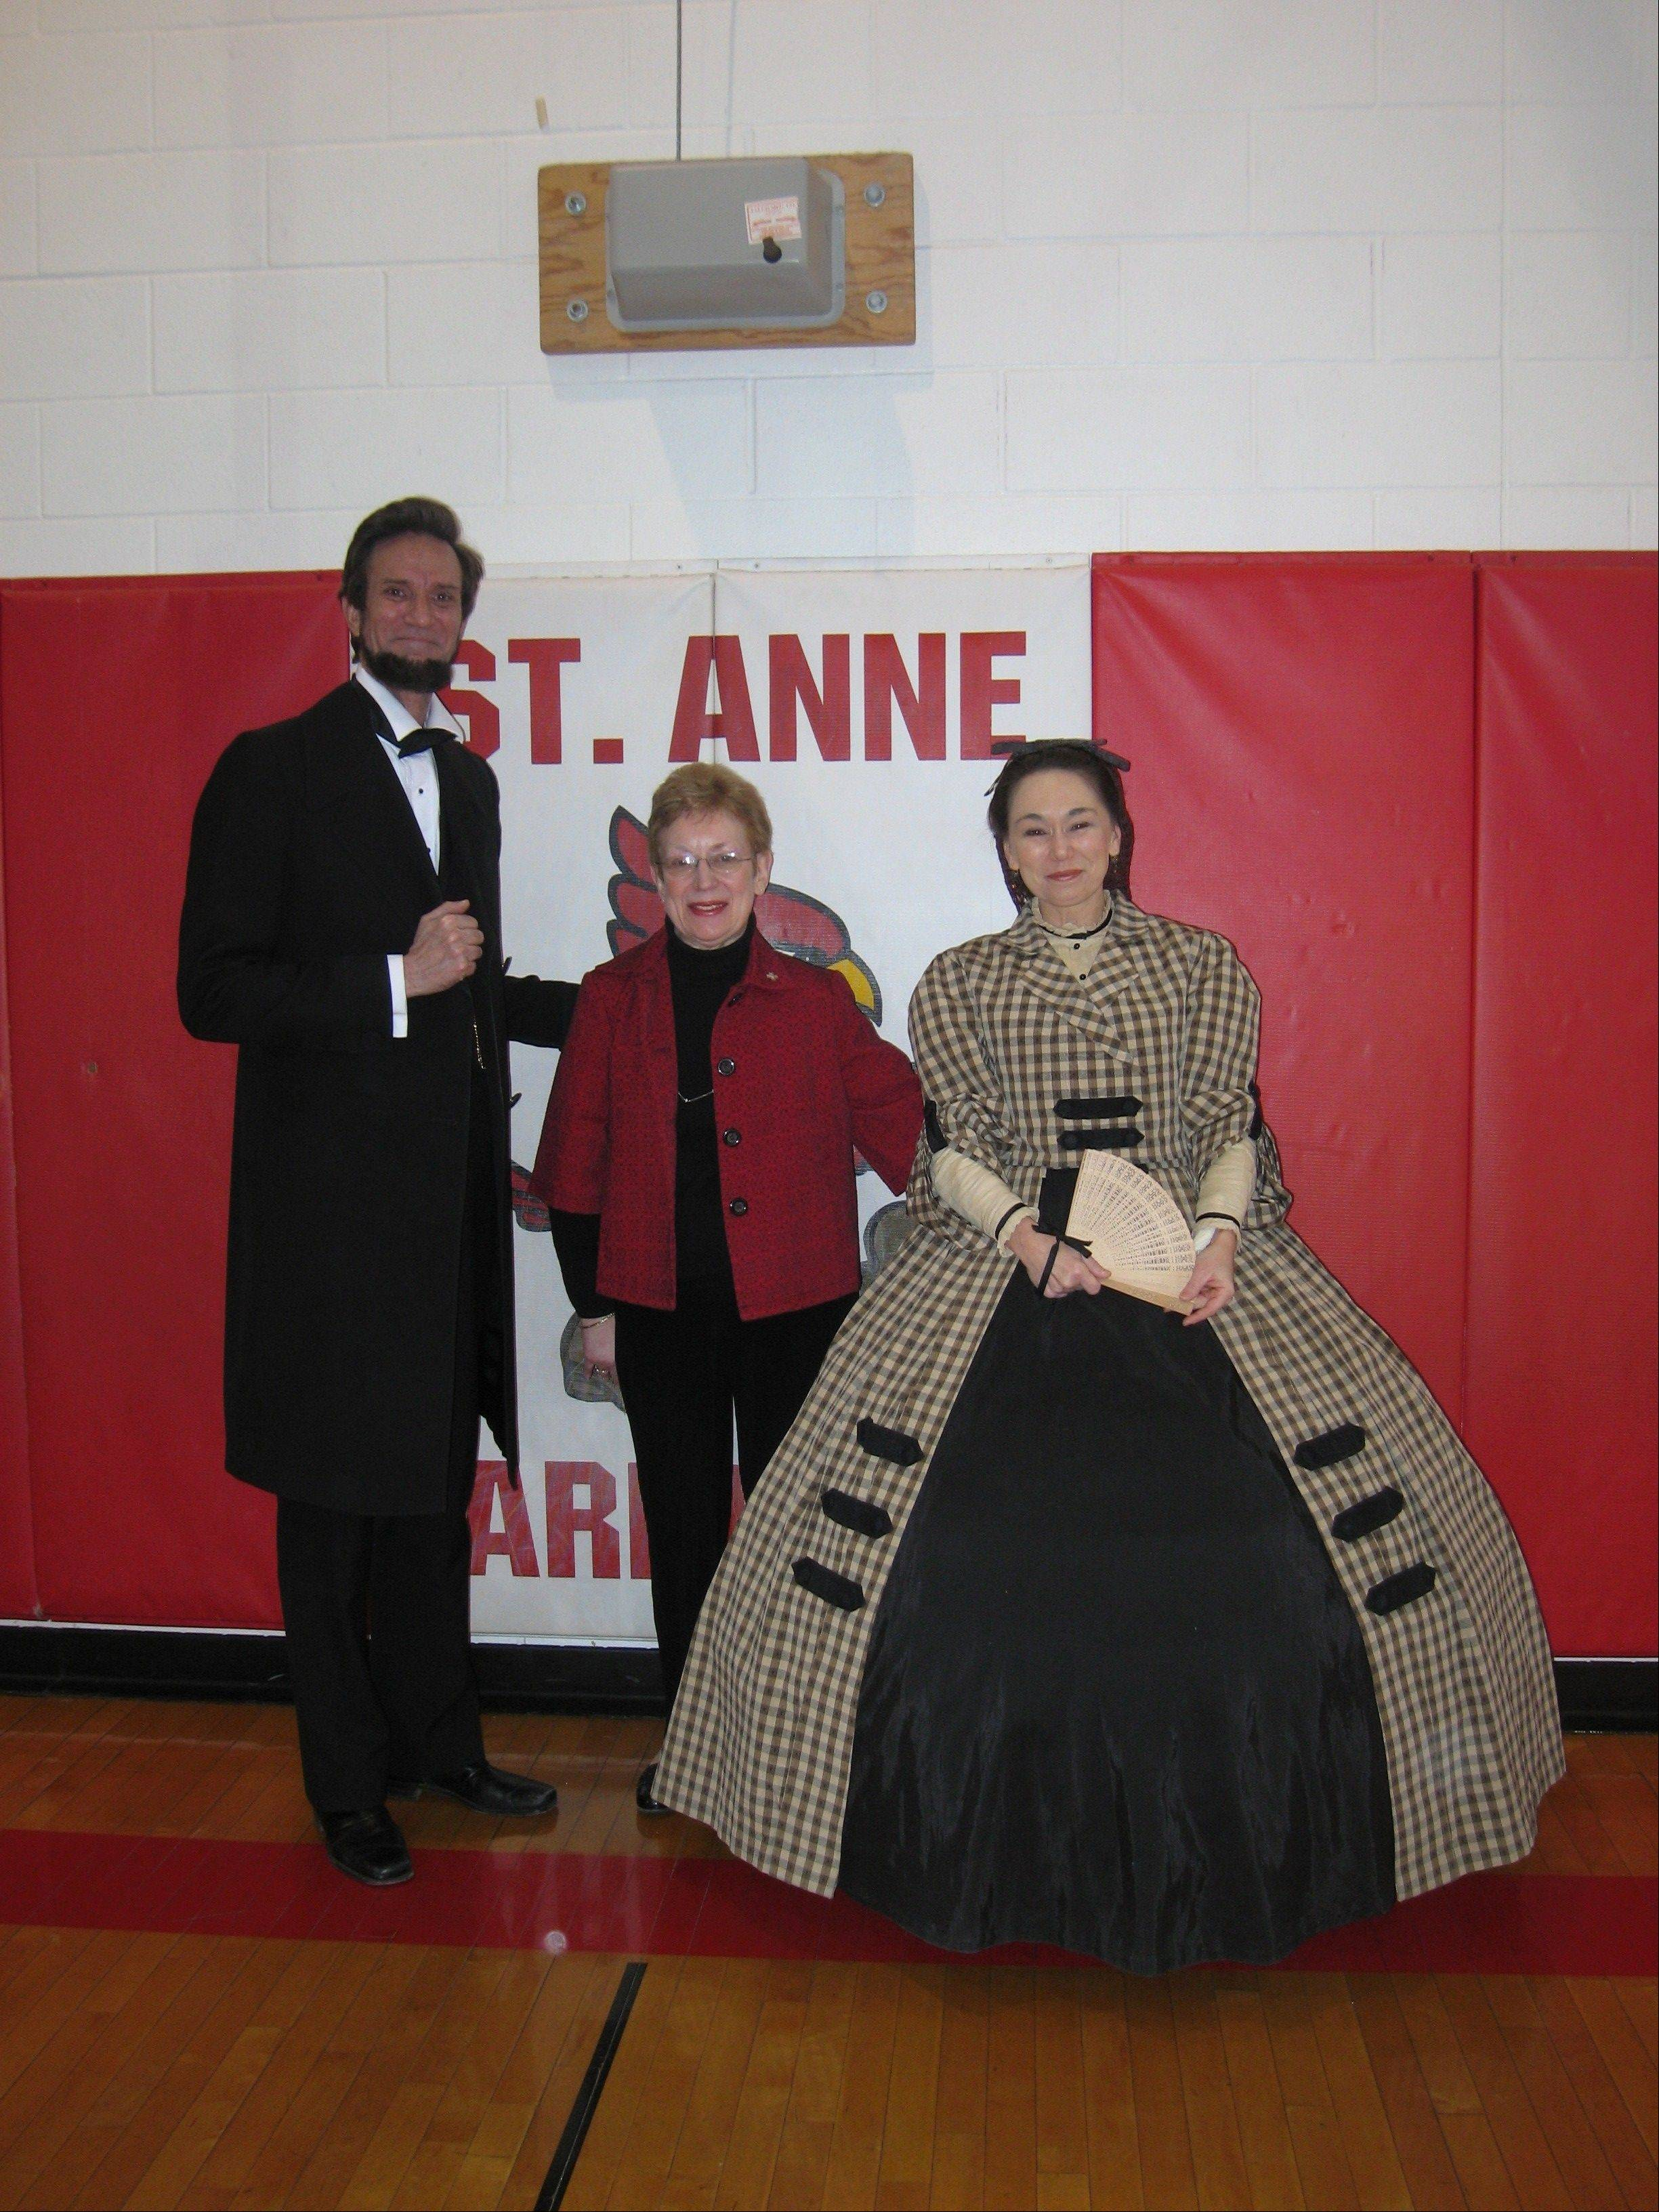 St. Anne Principal Sister Ann Busch poses with Abraham Lincoln and Mrs. Lincoln, following a 2009 presentation at the school. The Lincolns were portrayed by Michael Krebs and Debra Ann Miller.